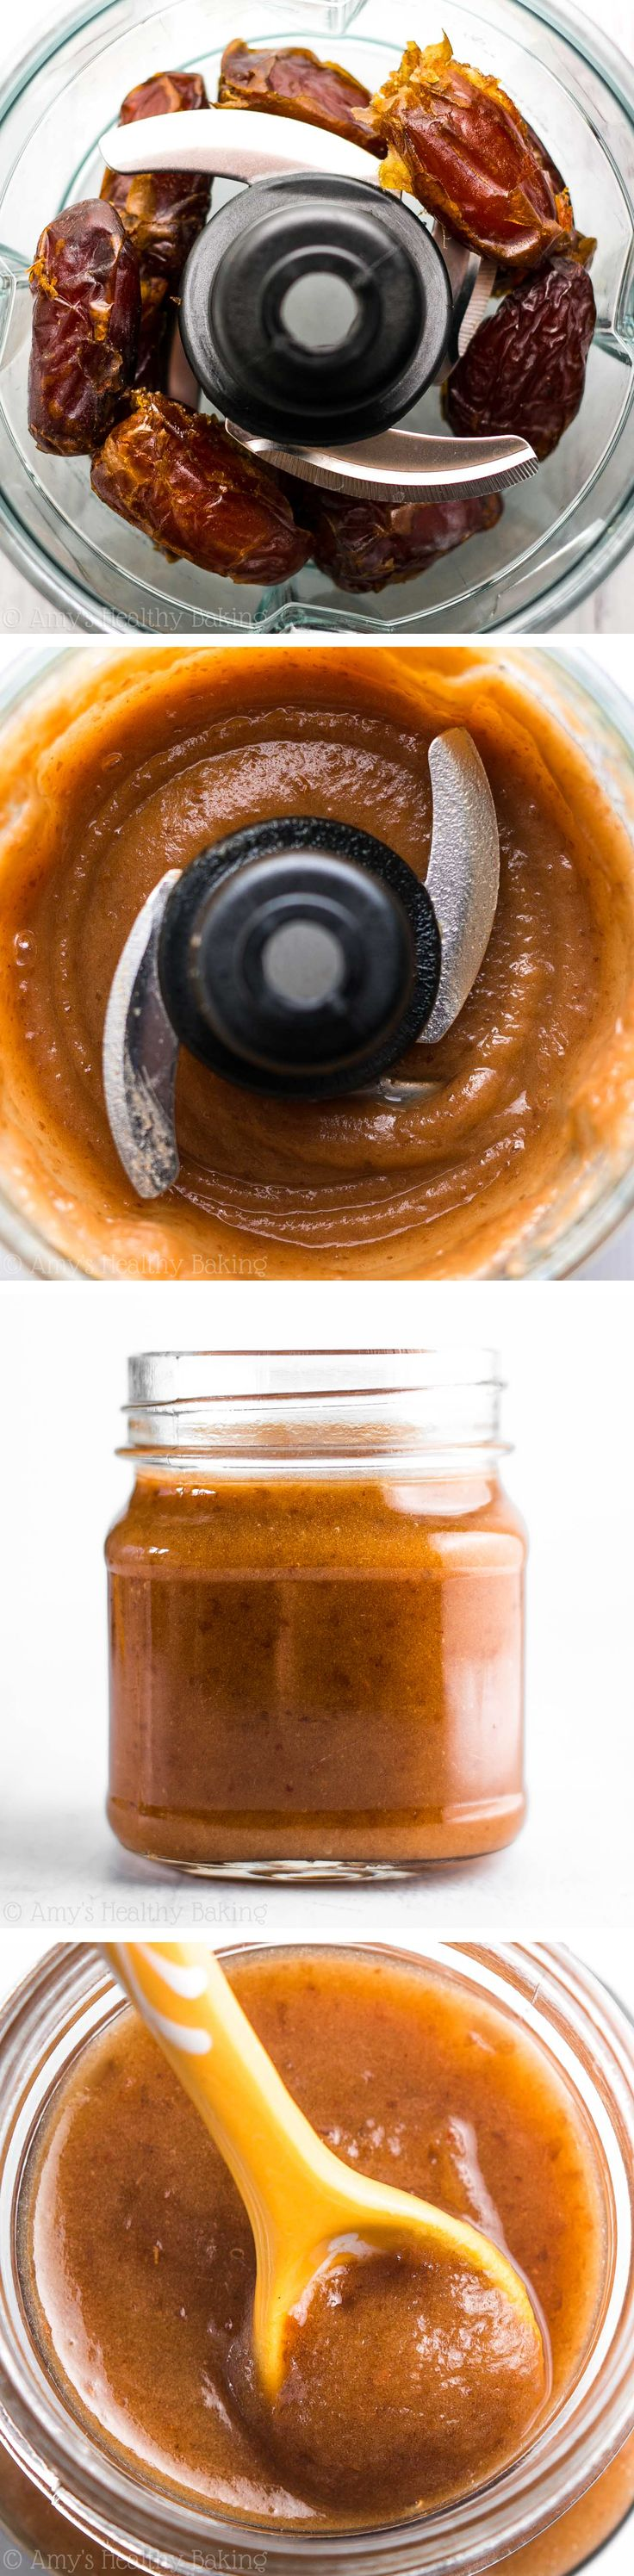 Completely healthy, guilt-free caramel sauce! It's the easiest you'll ever make. You just need 10 minutes & a blender!